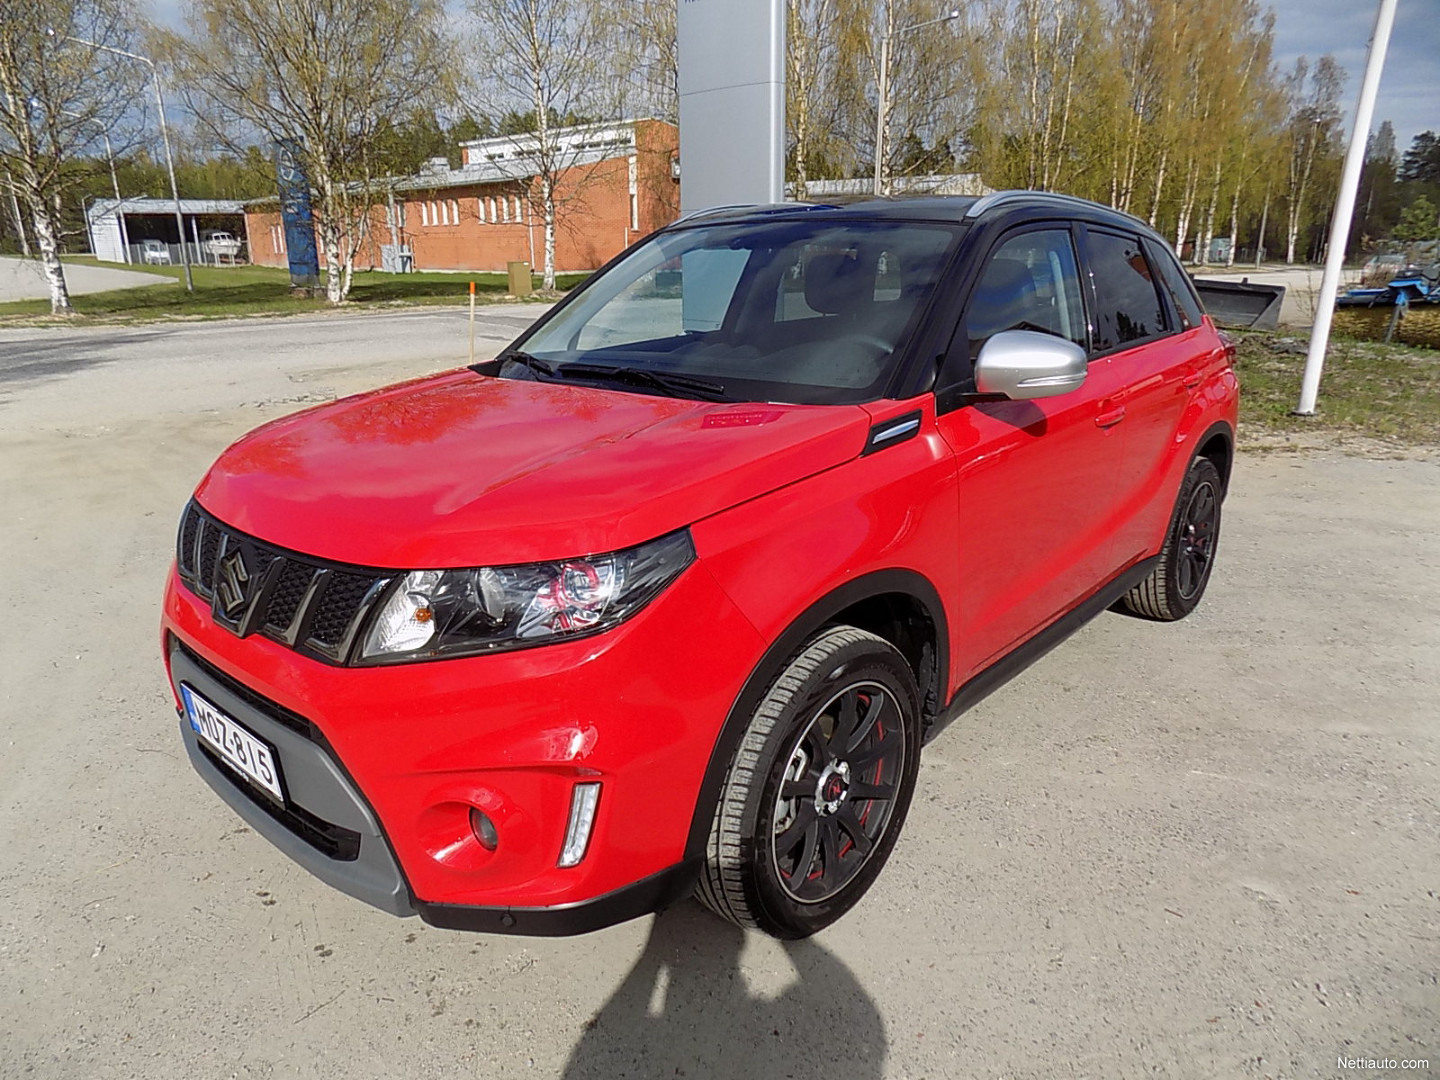 suzuki vitara 1 4 boosterjet 4wd s 6mt 4x4 2016 used vehicle nettiauto. Black Bedroom Furniture Sets. Home Design Ideas